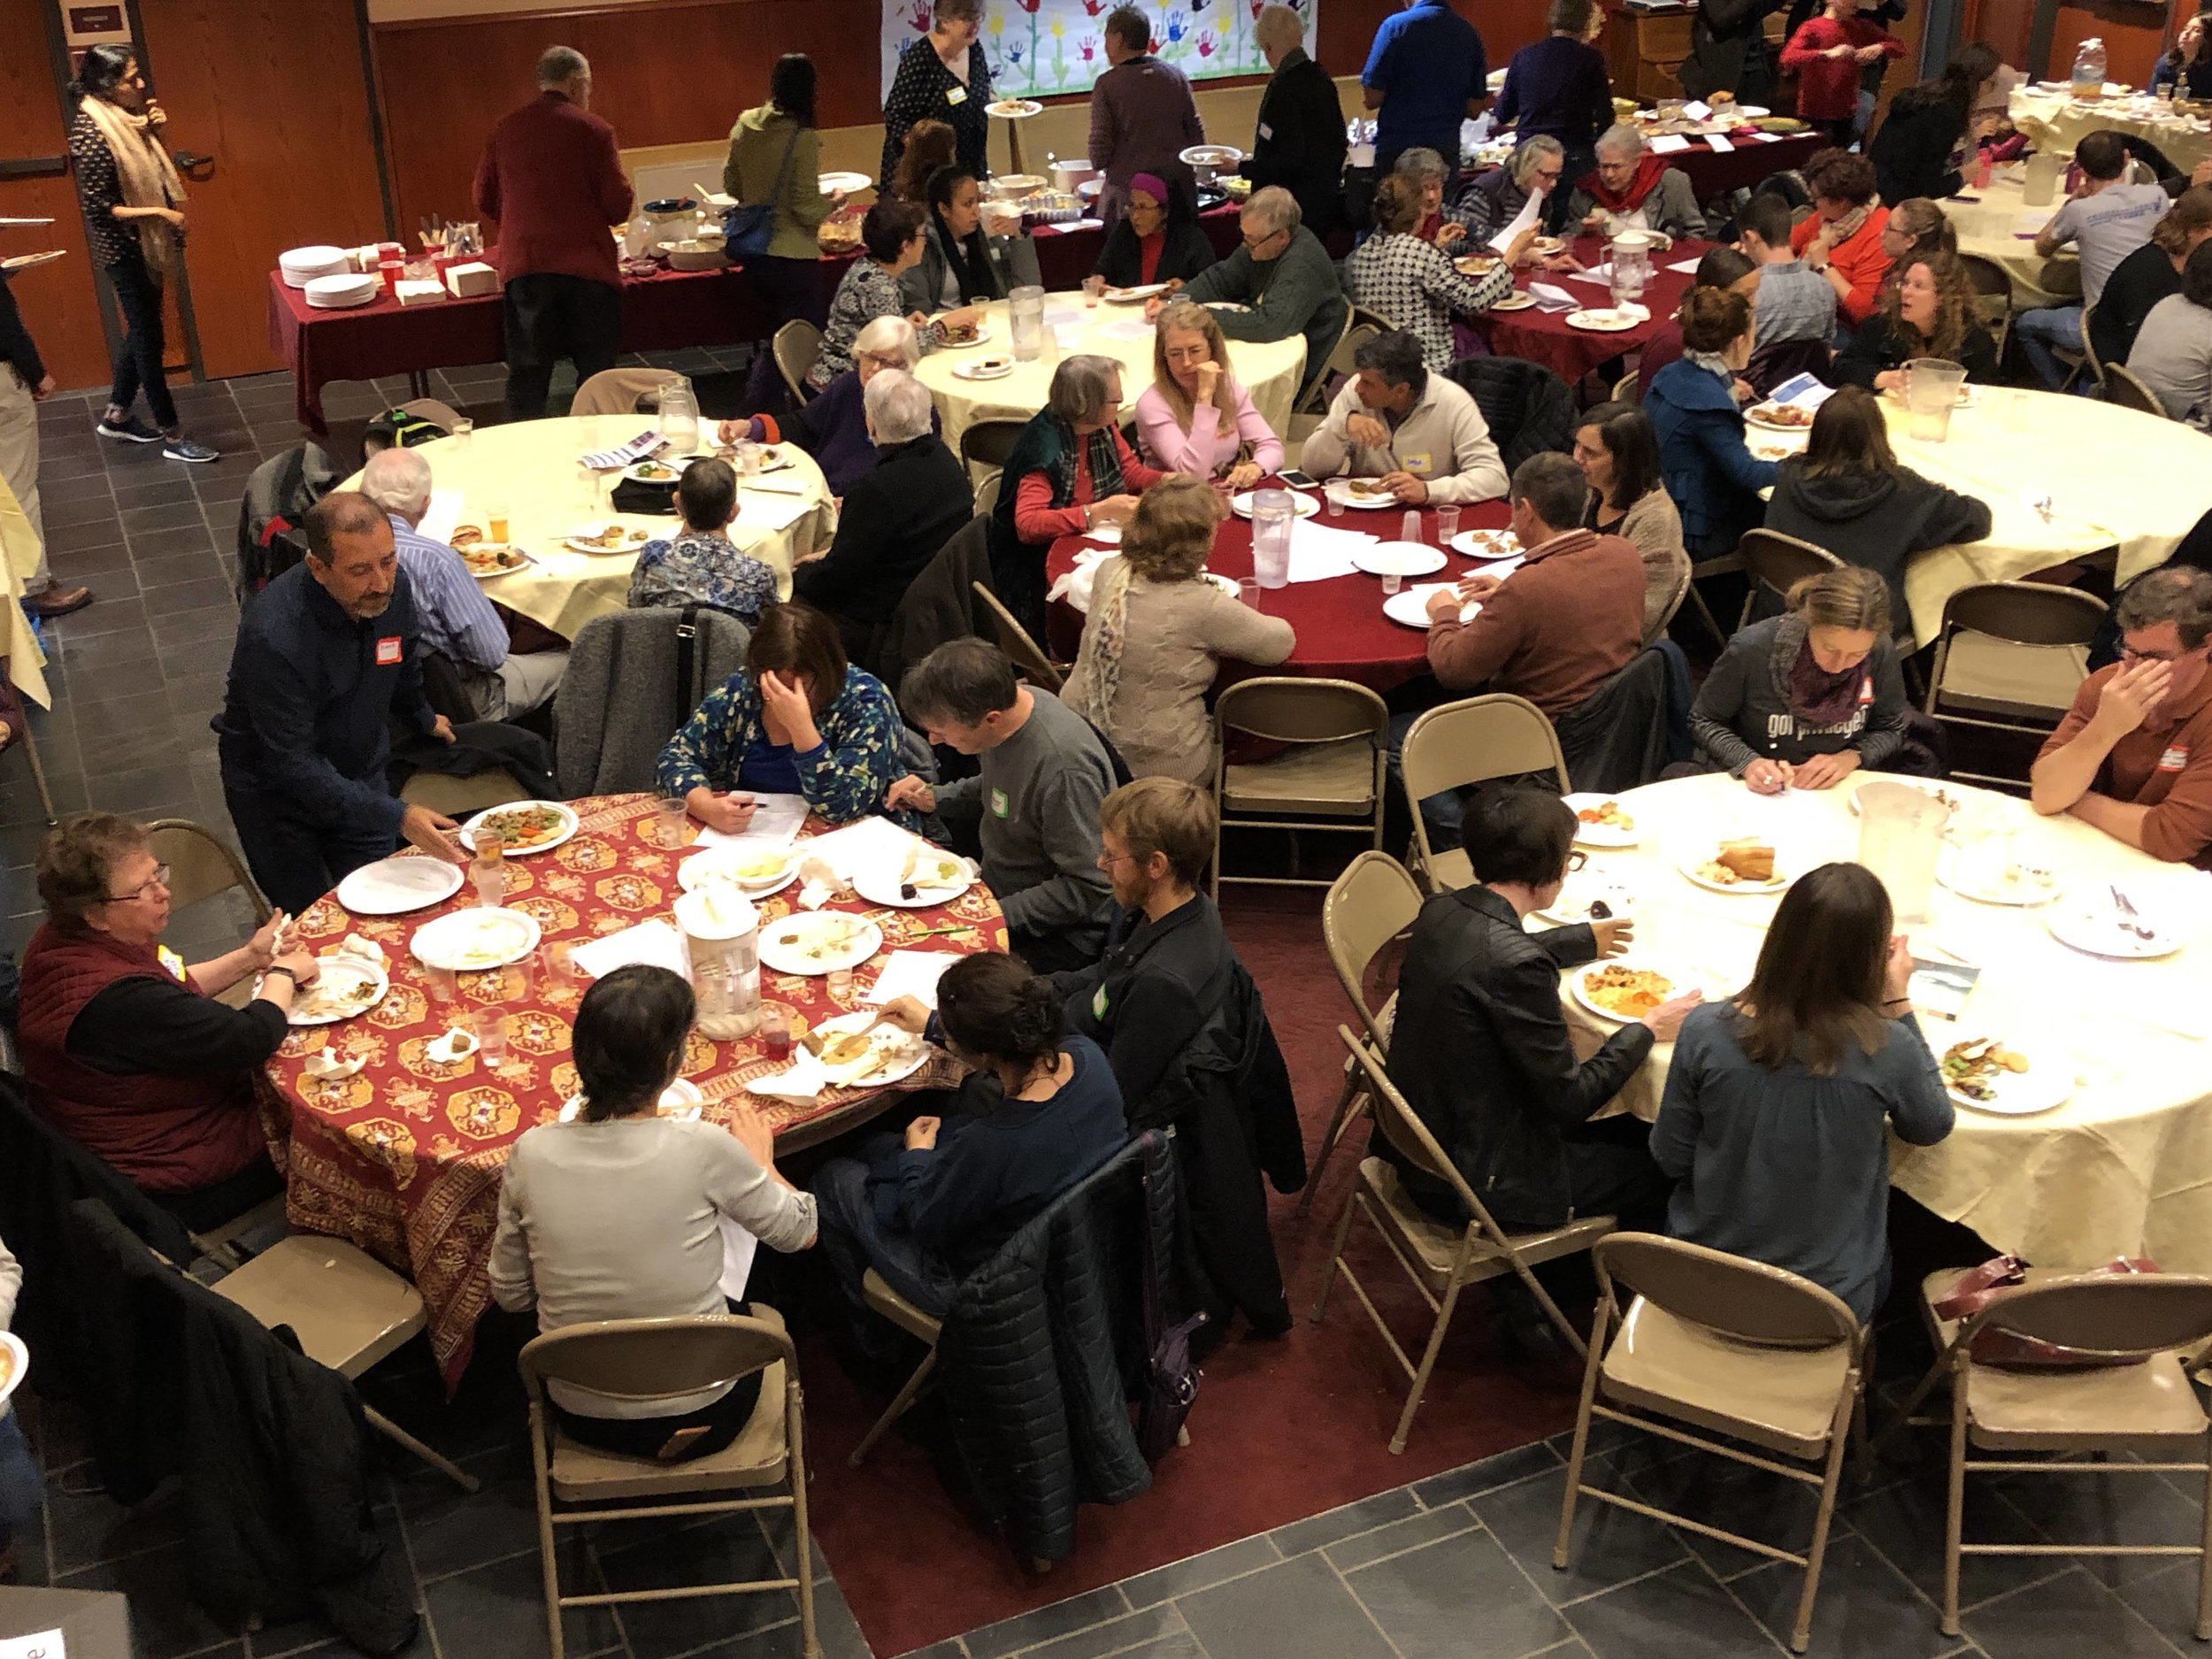 Great conversation and community building took place at the potluck.